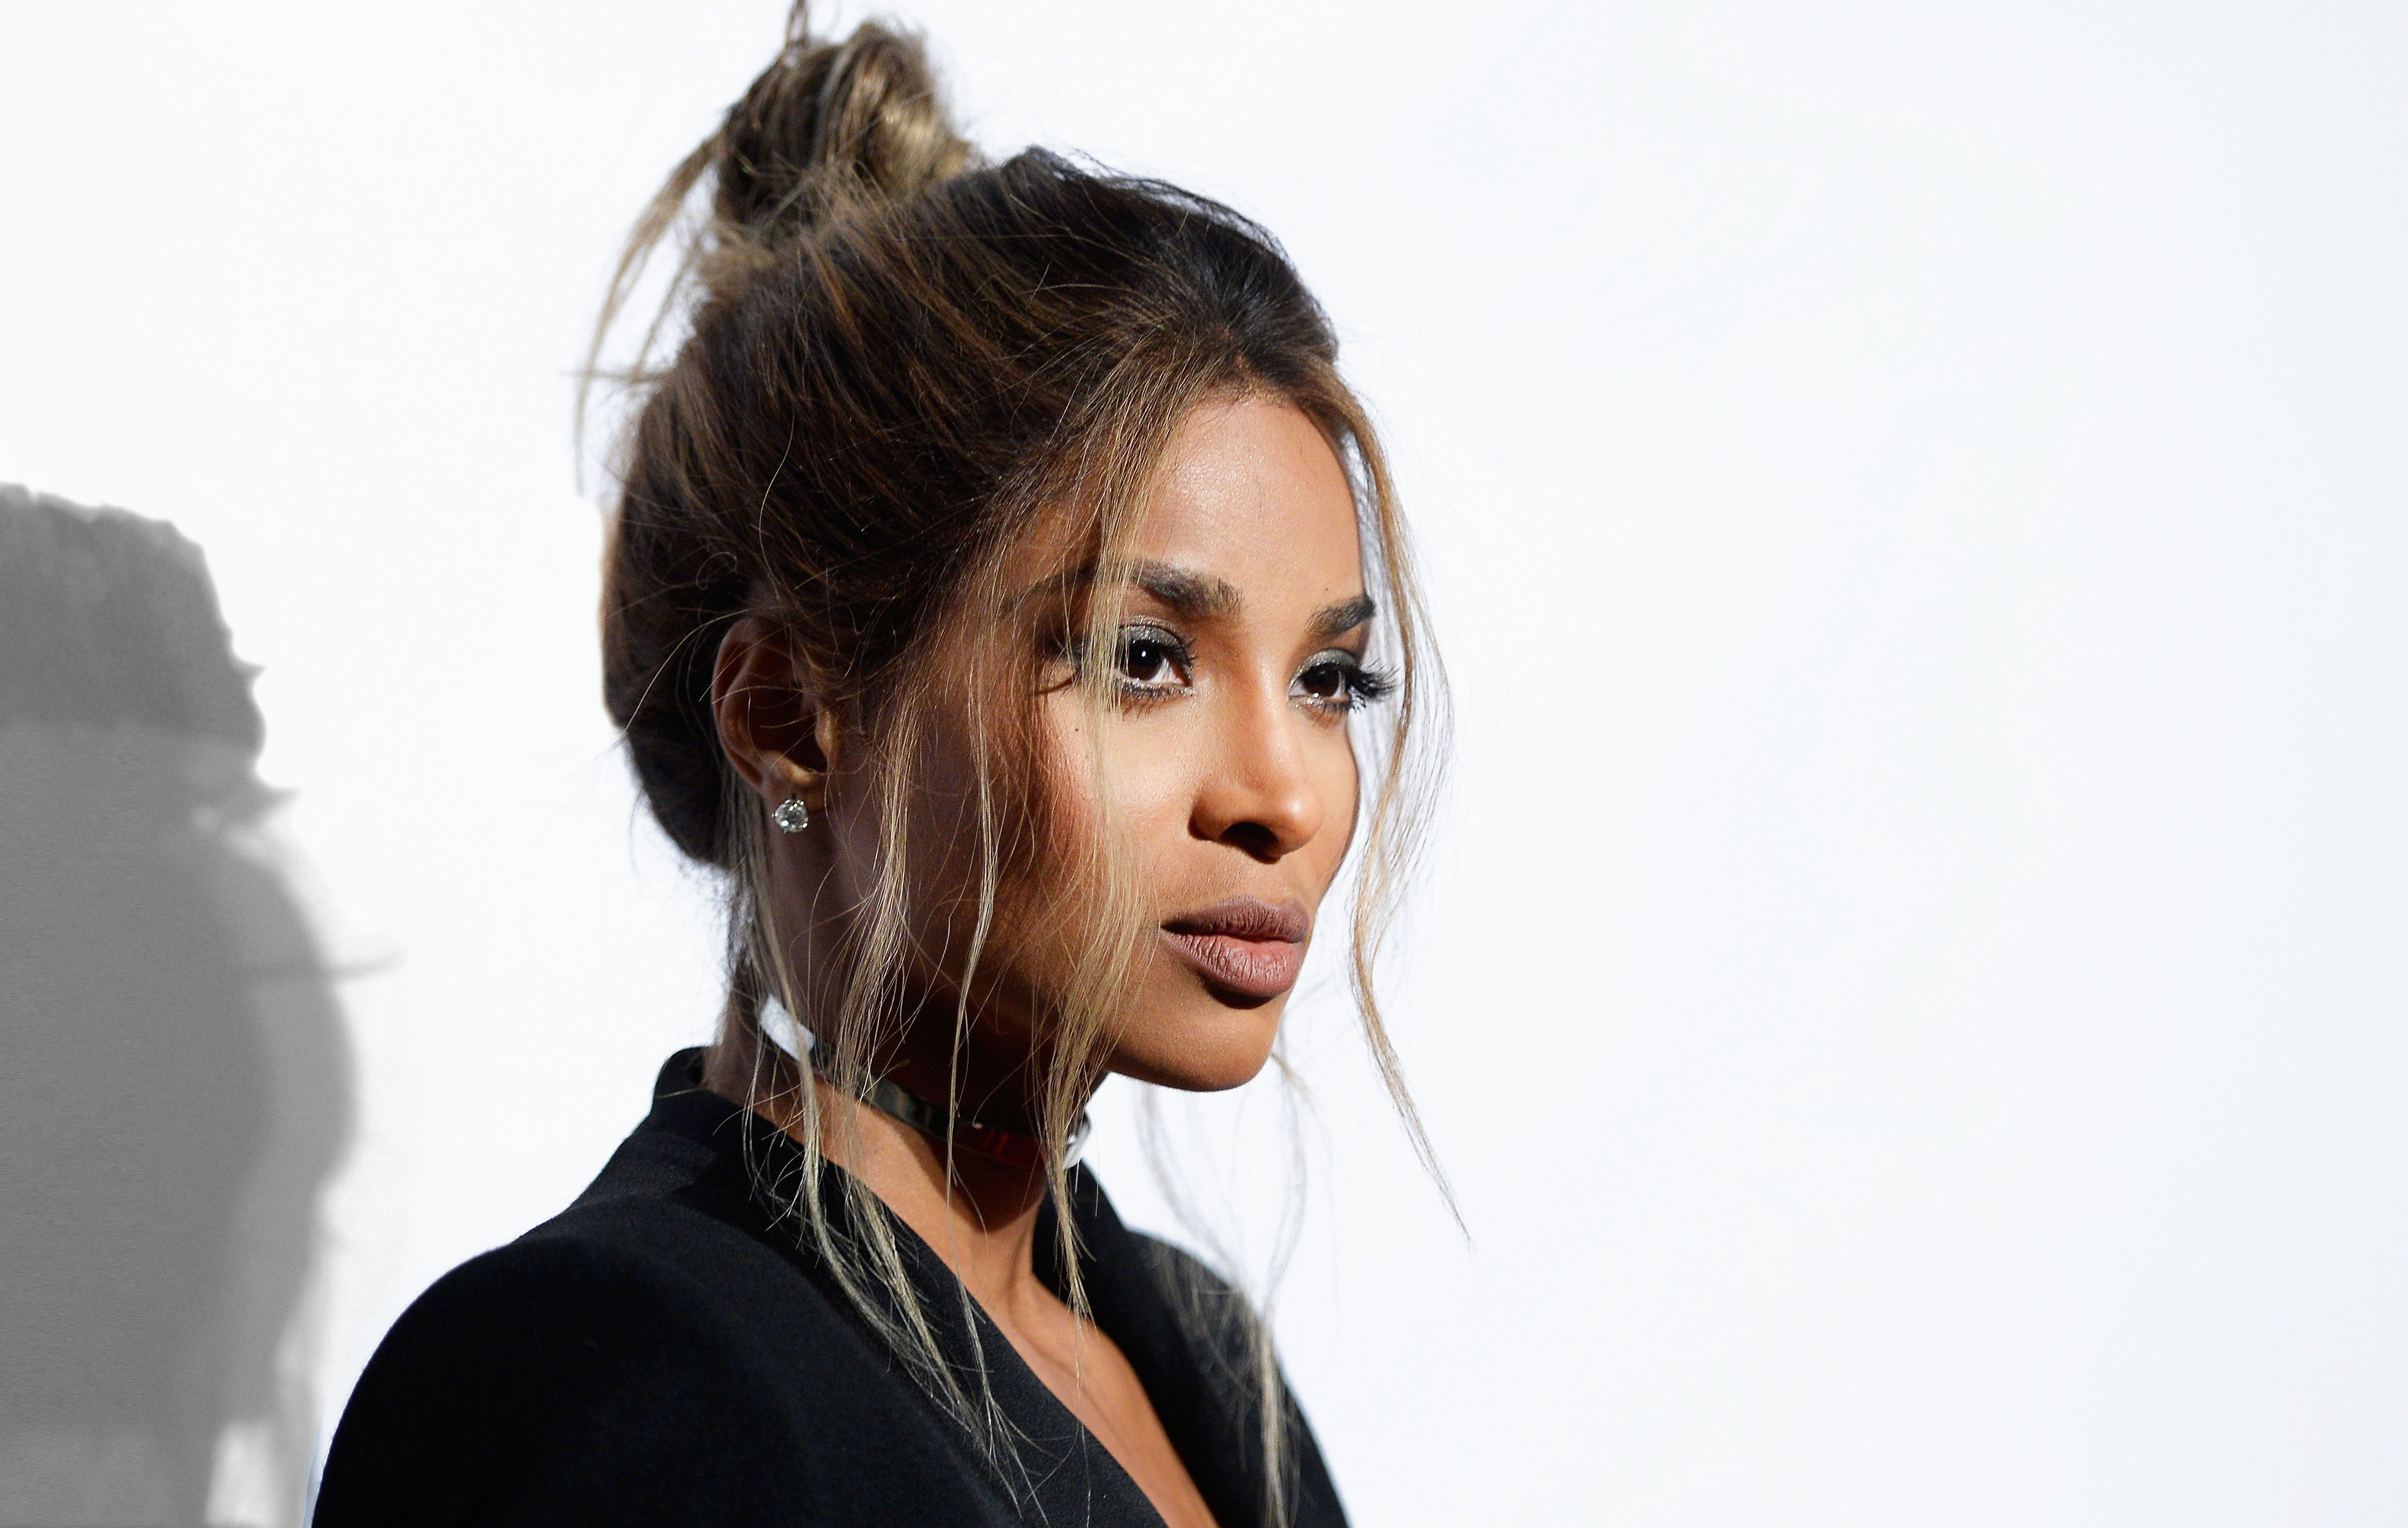 Ciara is now rocking the most fierce platinum blonde crop